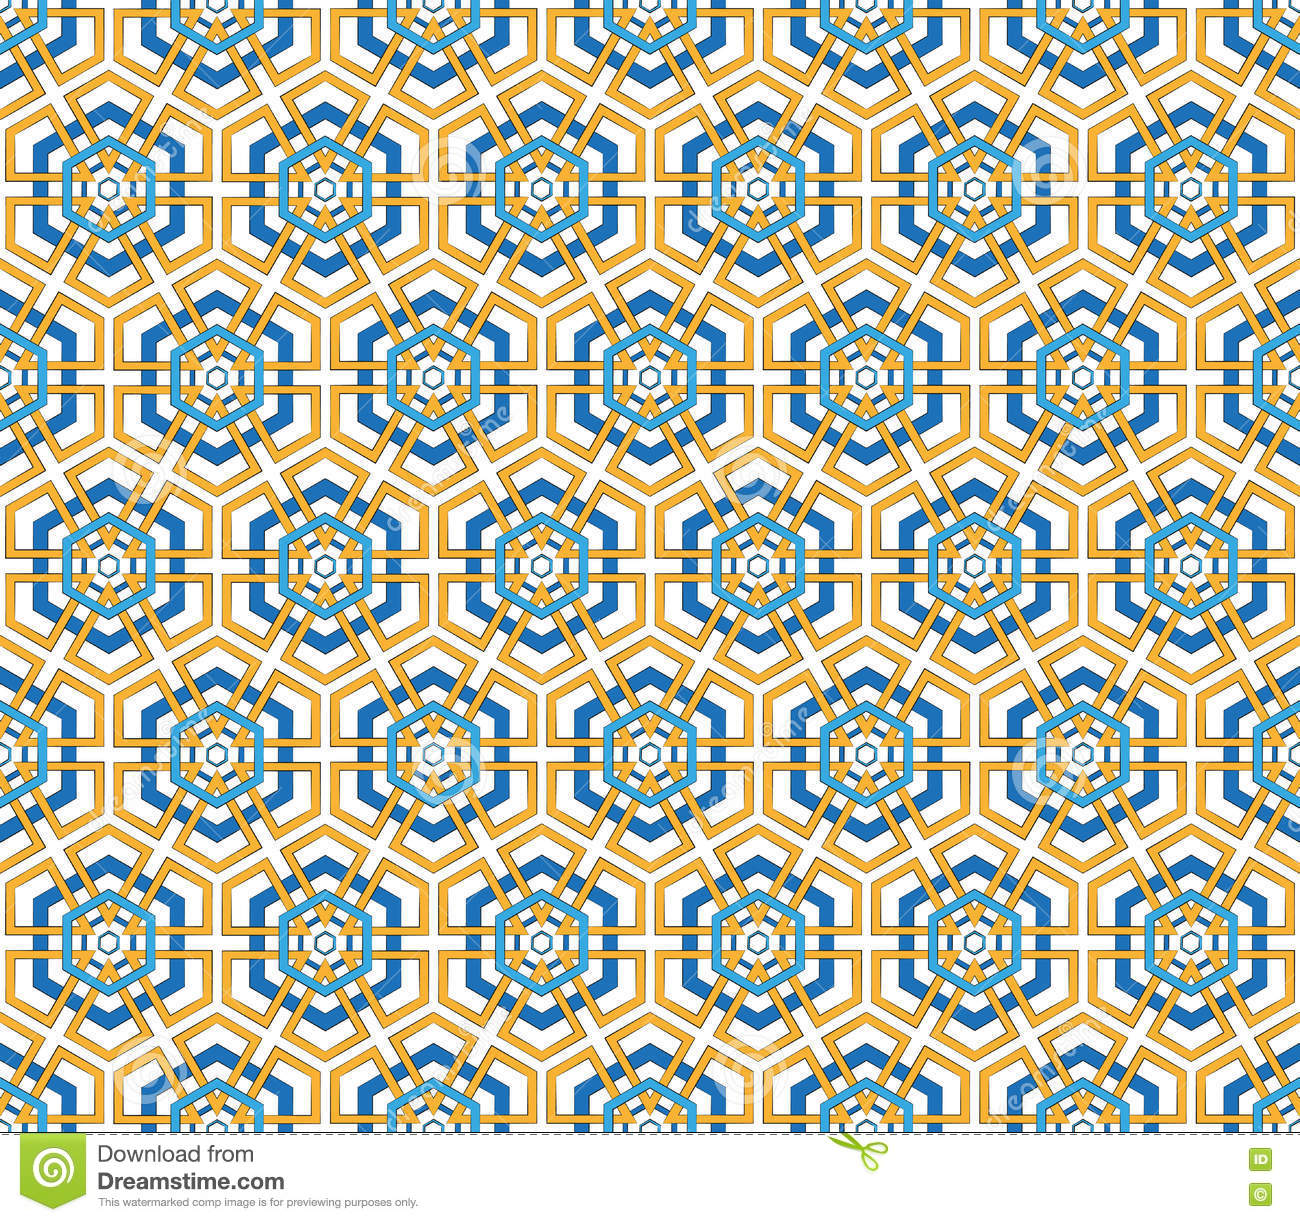 Blue and orange color hexagonal pattern